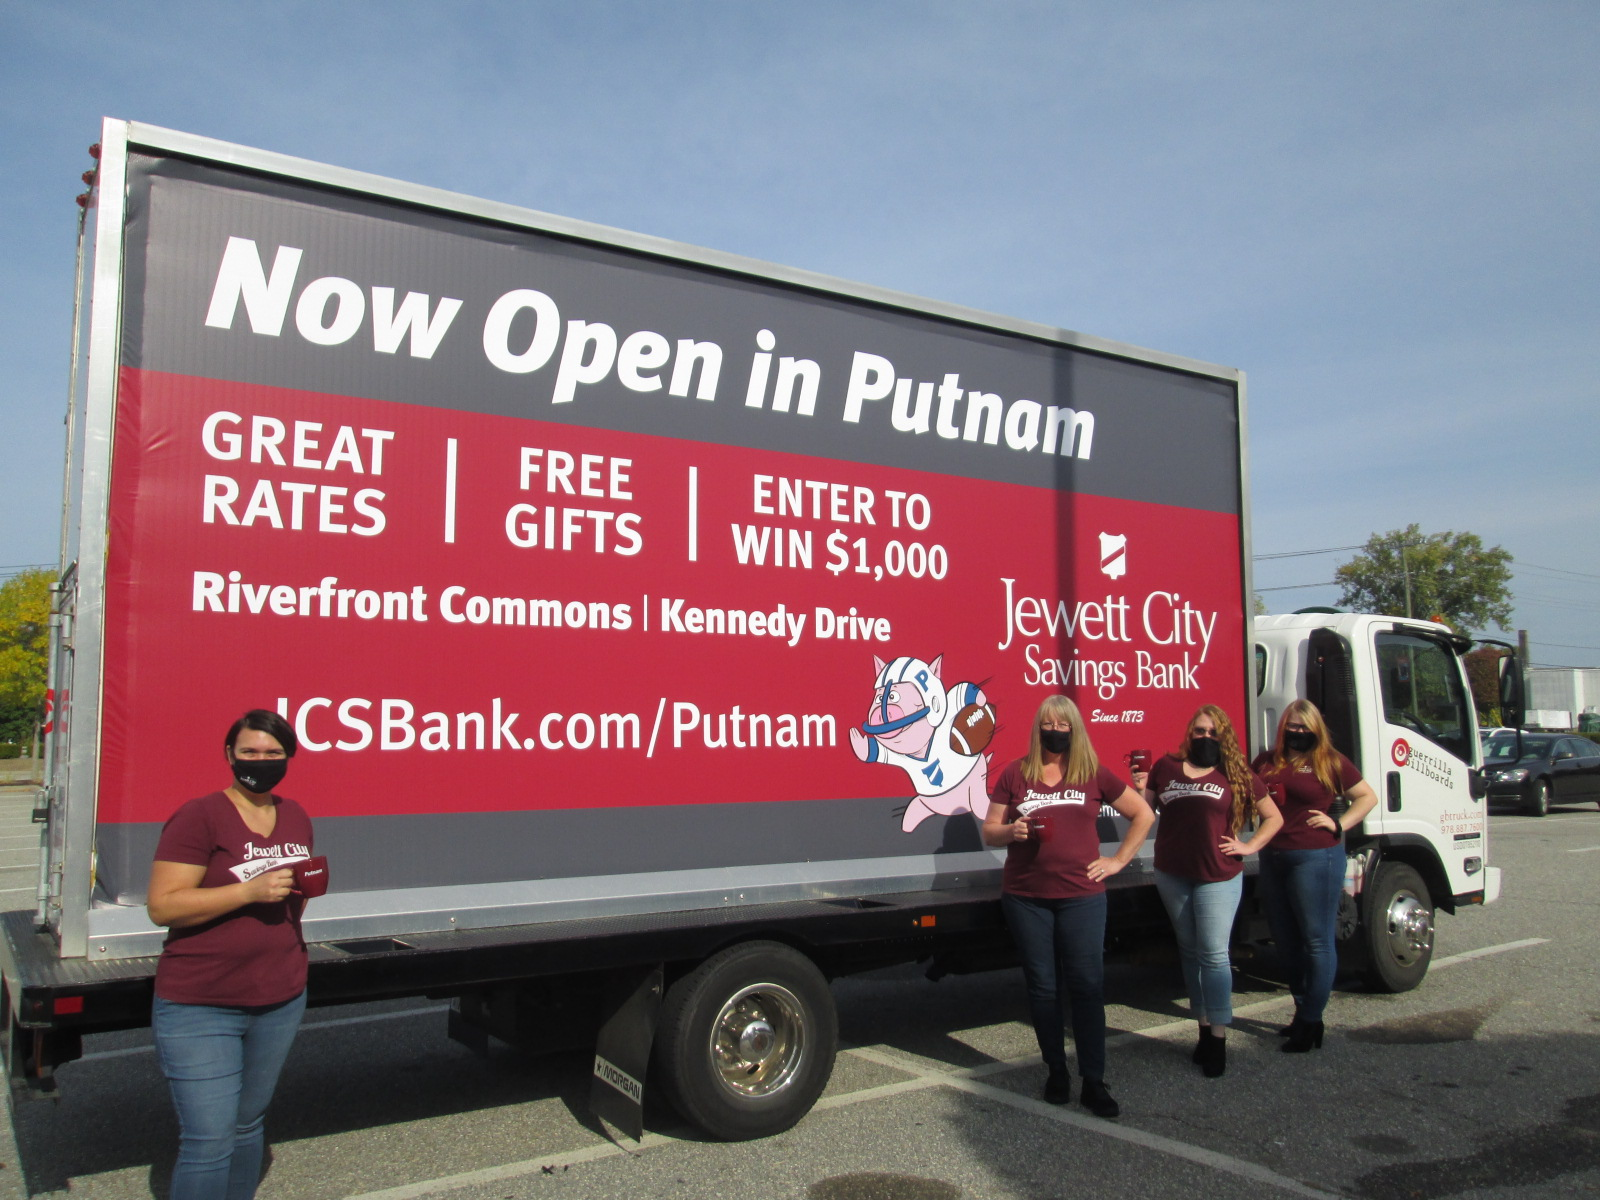 Mobile billboard promoting a new bank branch in CT.